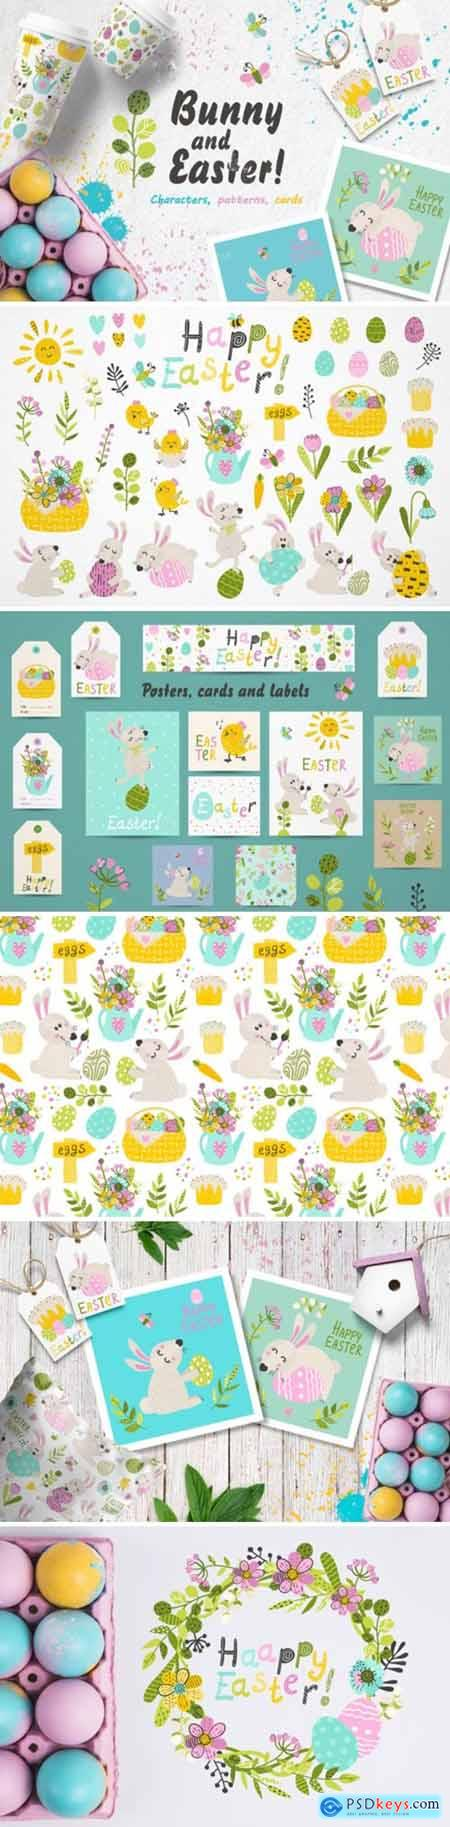 Bunny and Easter! 2196473